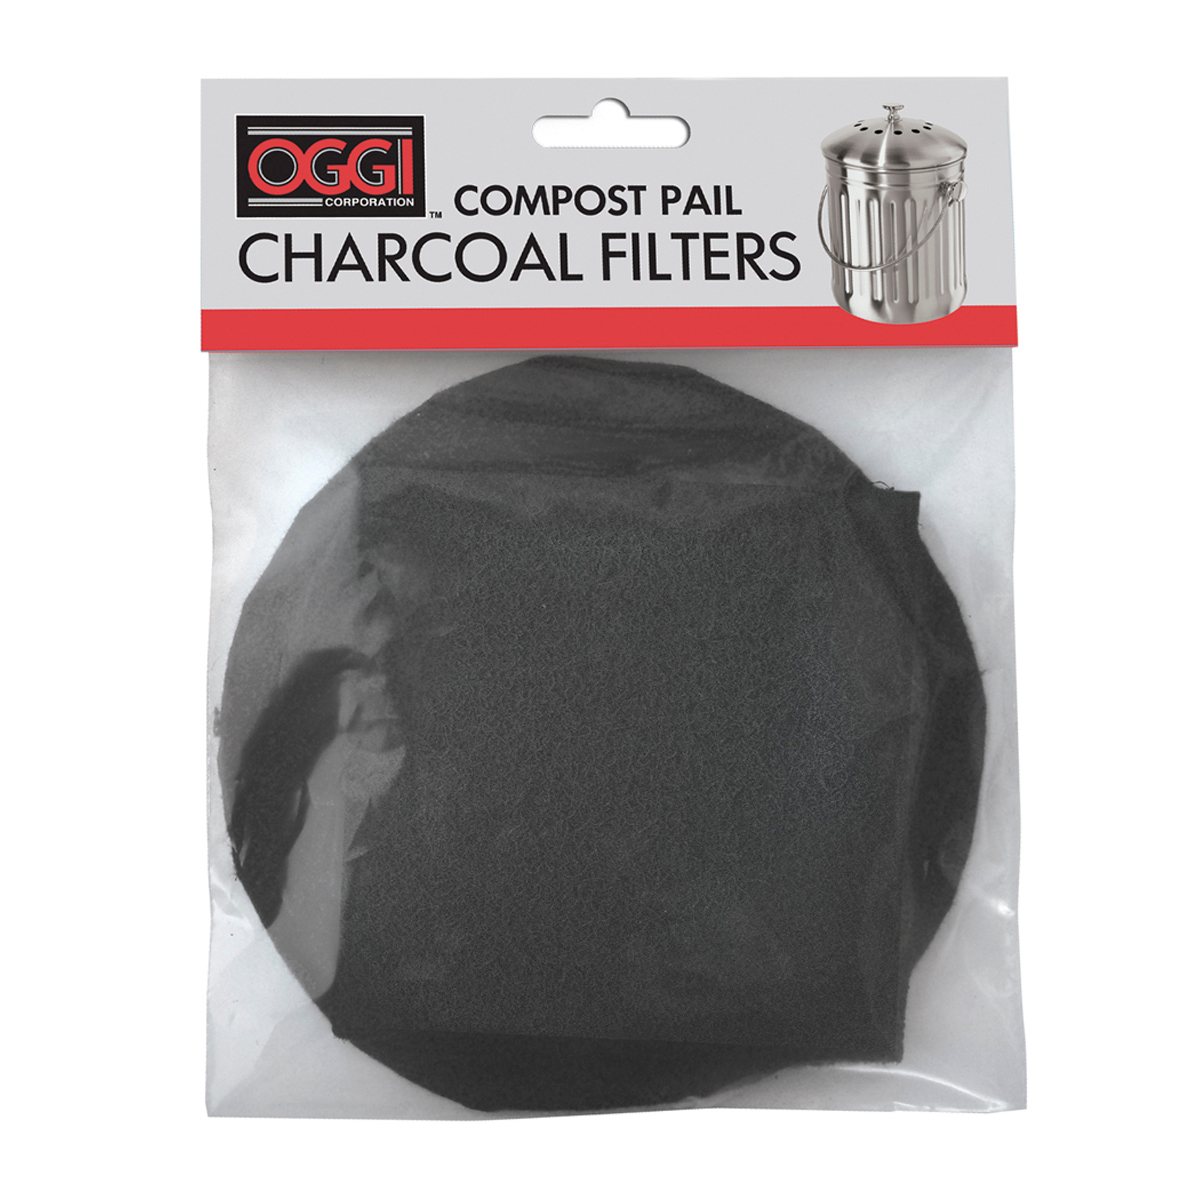 OGGI Black Charcoal Filter for Items #7320 and #7700, Set of 2